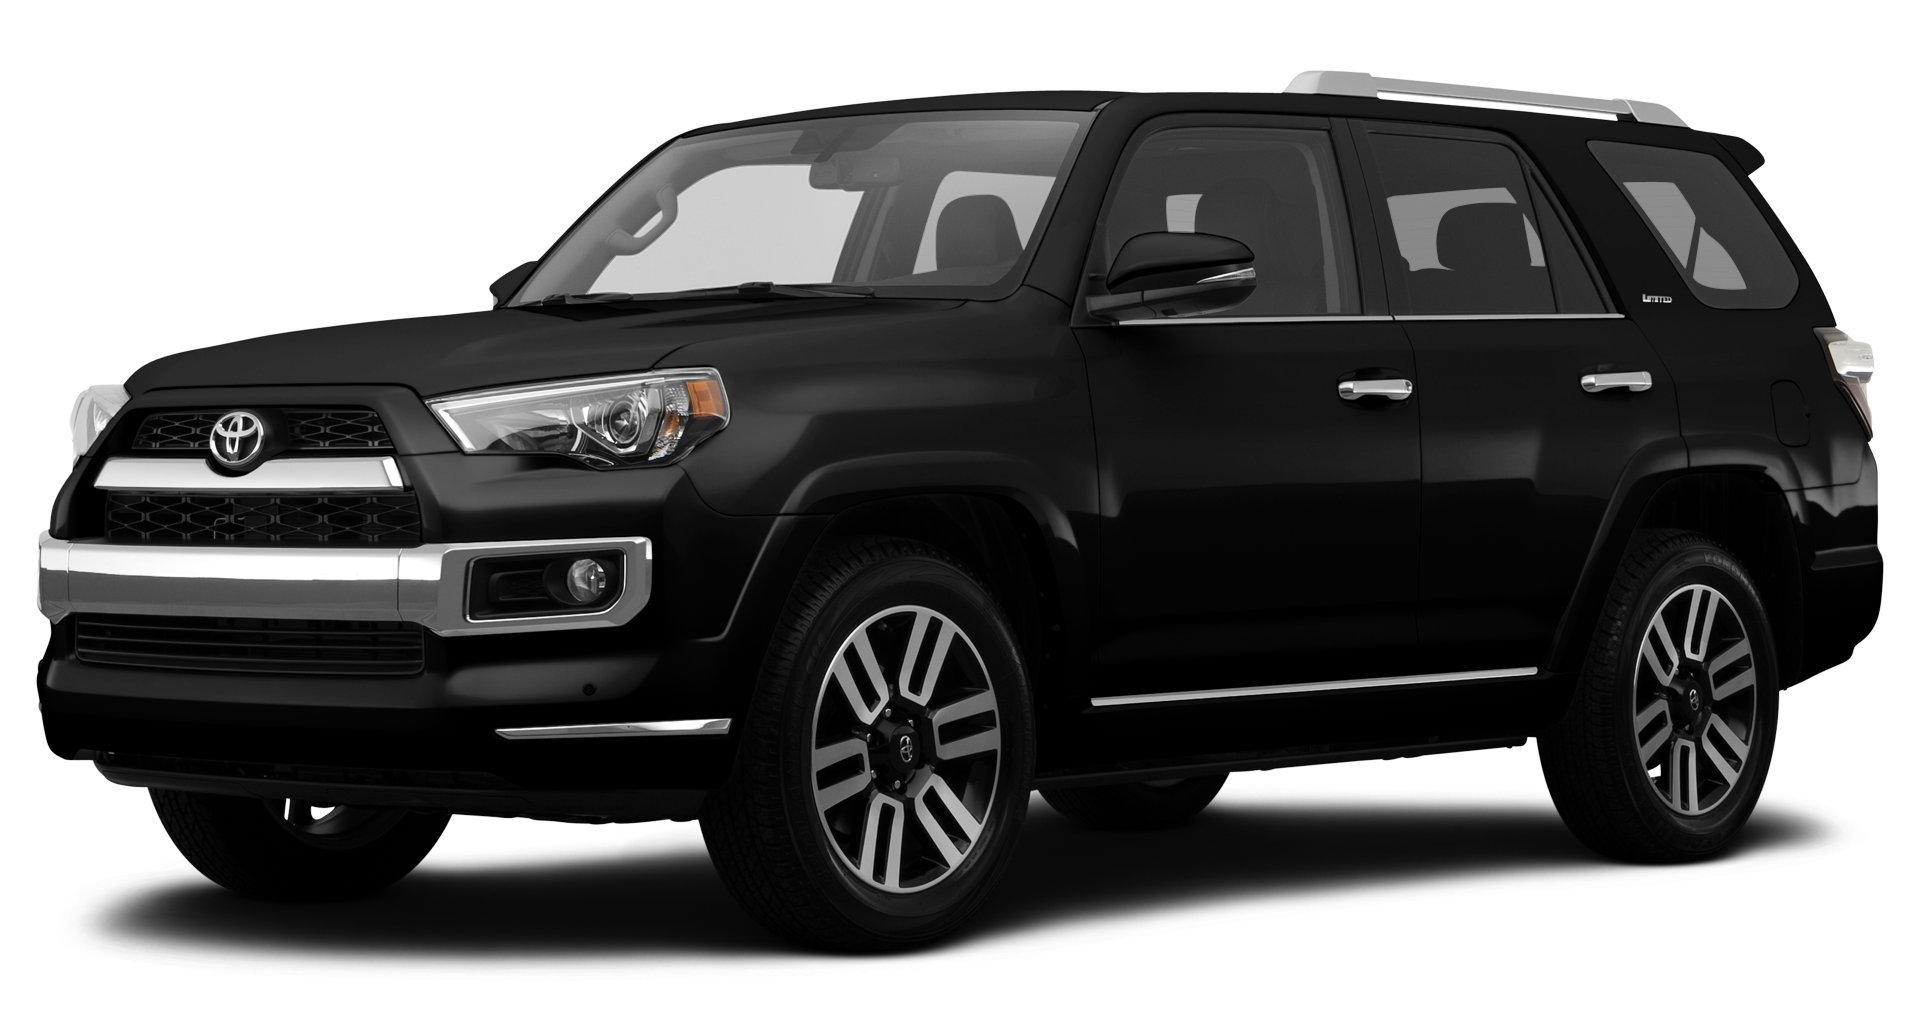 2014 toyota 4runner reviews images and specs vehicles. Black Bedroom Furniture Sets. Home Design Ideas